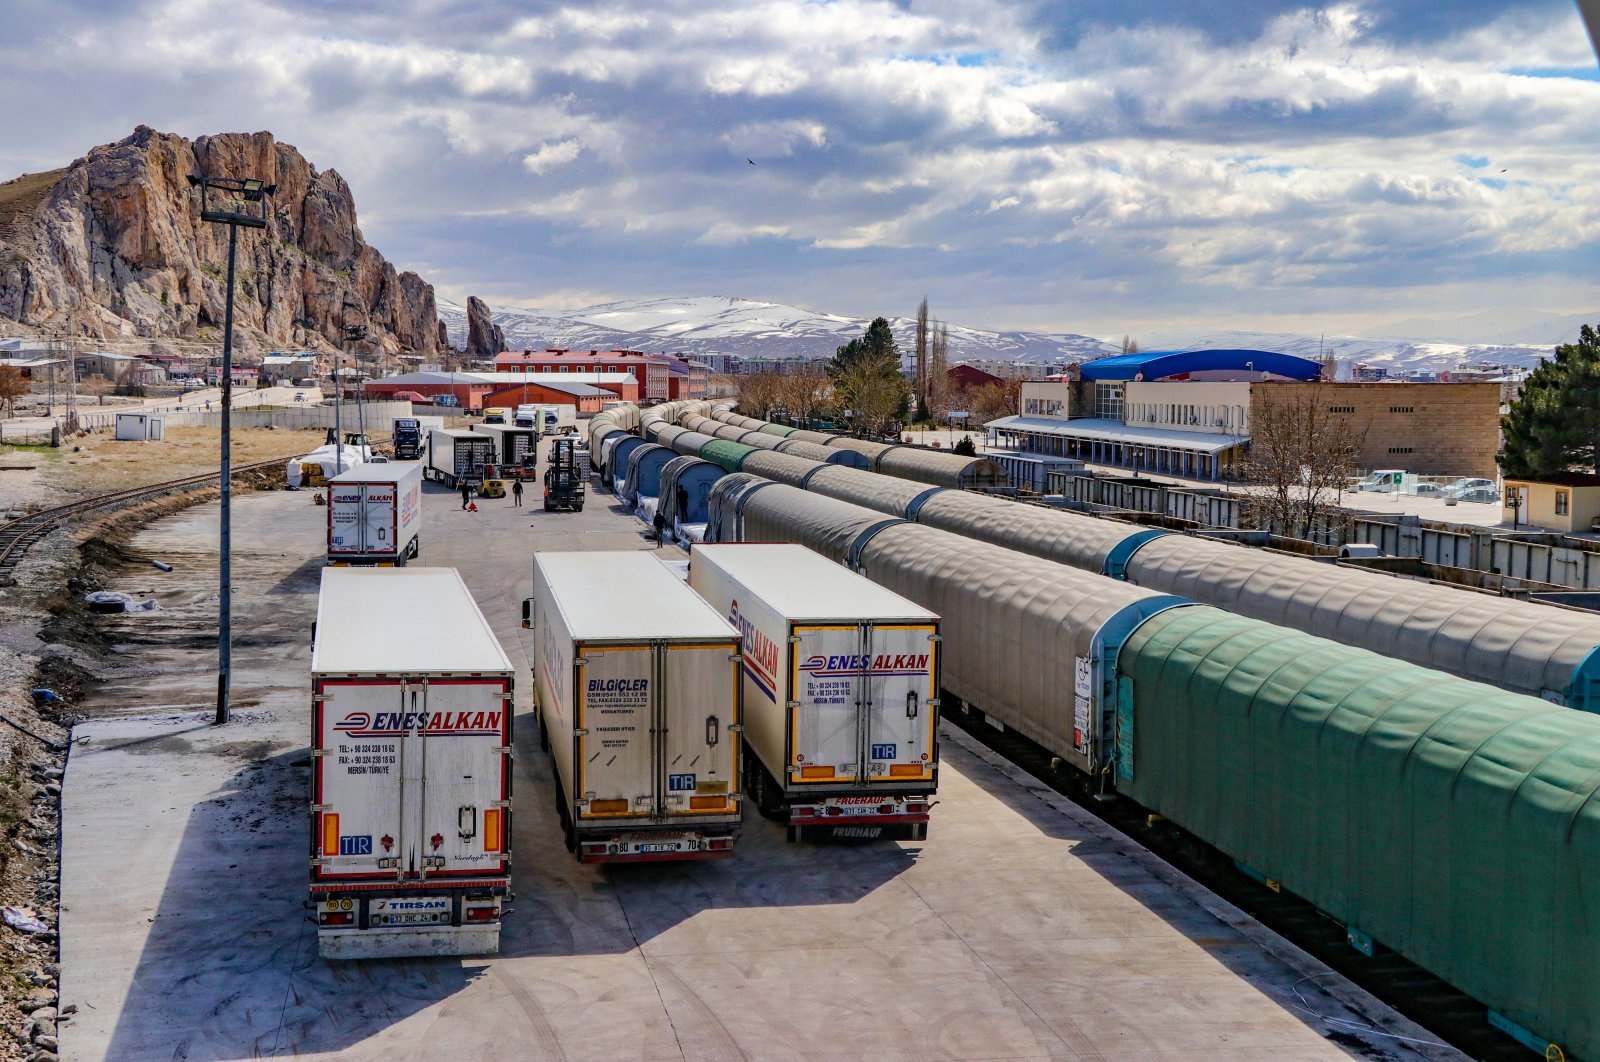 Trucks carrying goods and railway cars are seen near a logistics center in the eastern province of Van near the Iranian border, March 23, 2020. (AA Photo)